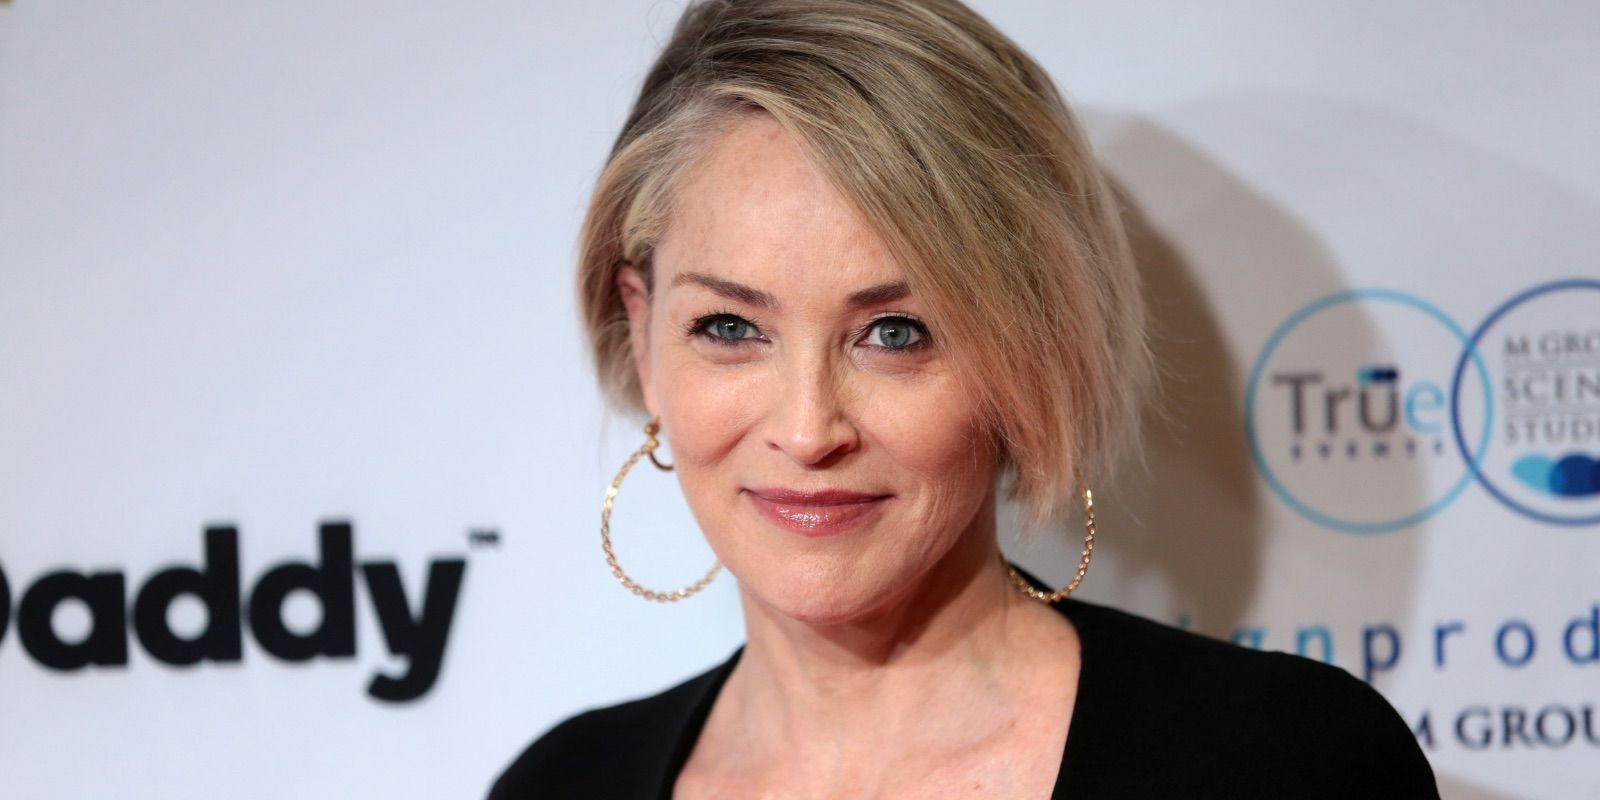 Why was Sharon Stone banned from Bumble?